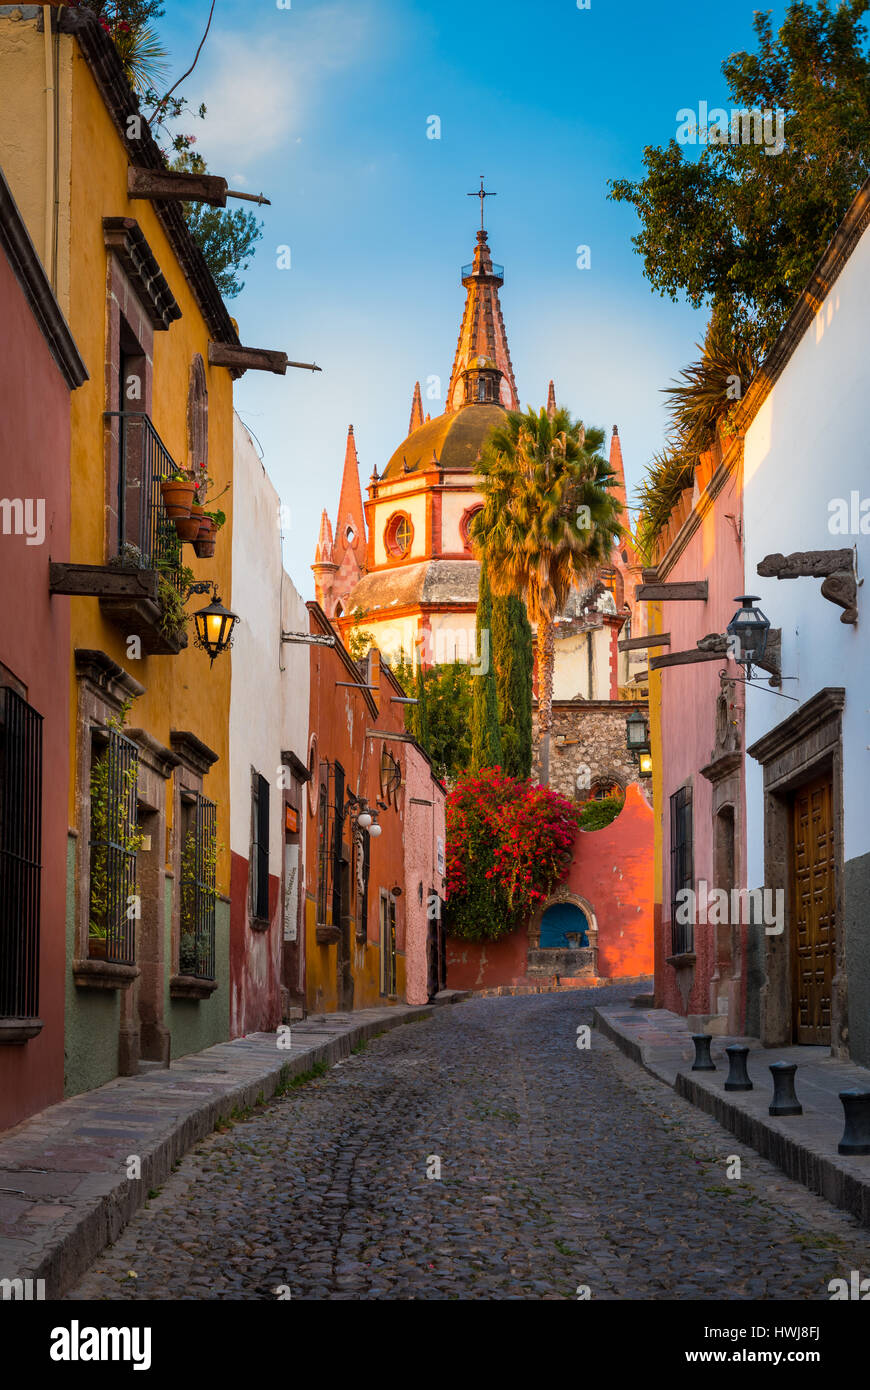 Picturesque scene in the historic center of San Miguel de Allende, exico ------ San Miguel de Allende is a city - Stock Image